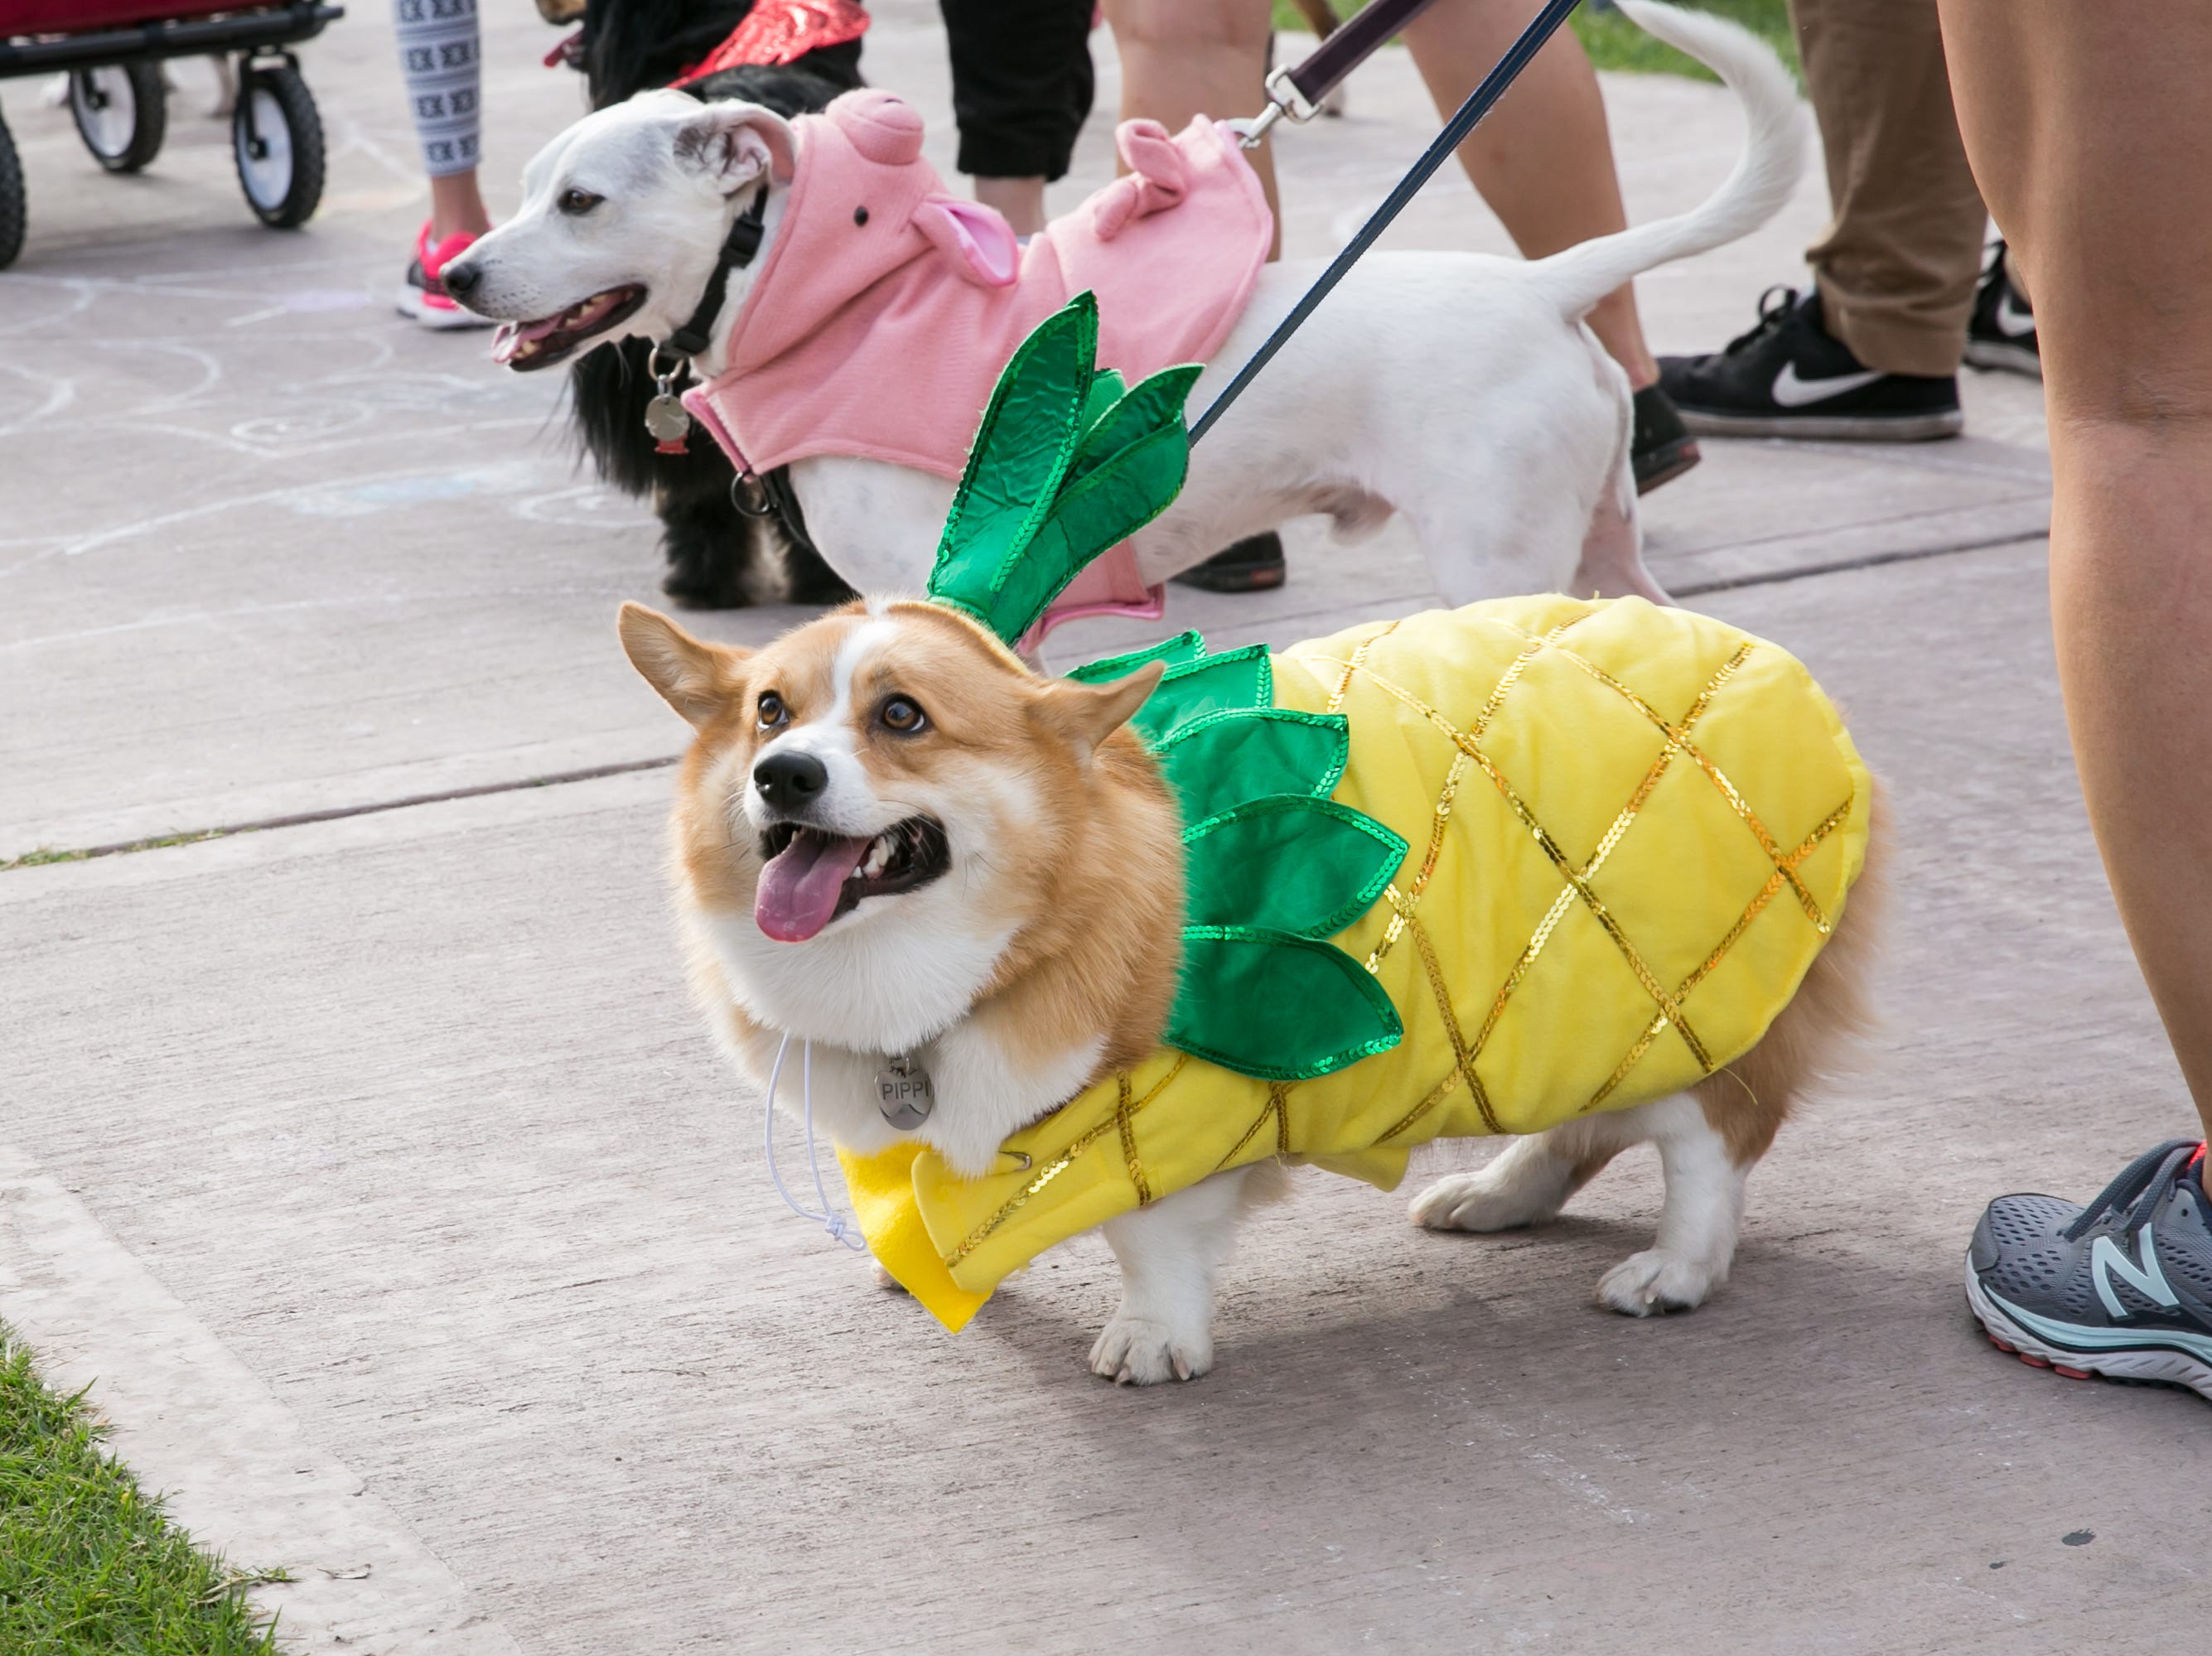 This corgi enjoyed pina coladas and getting caught in the rain during Howl-o-Ween at Hance Park on Sunday, October 28, 2018.